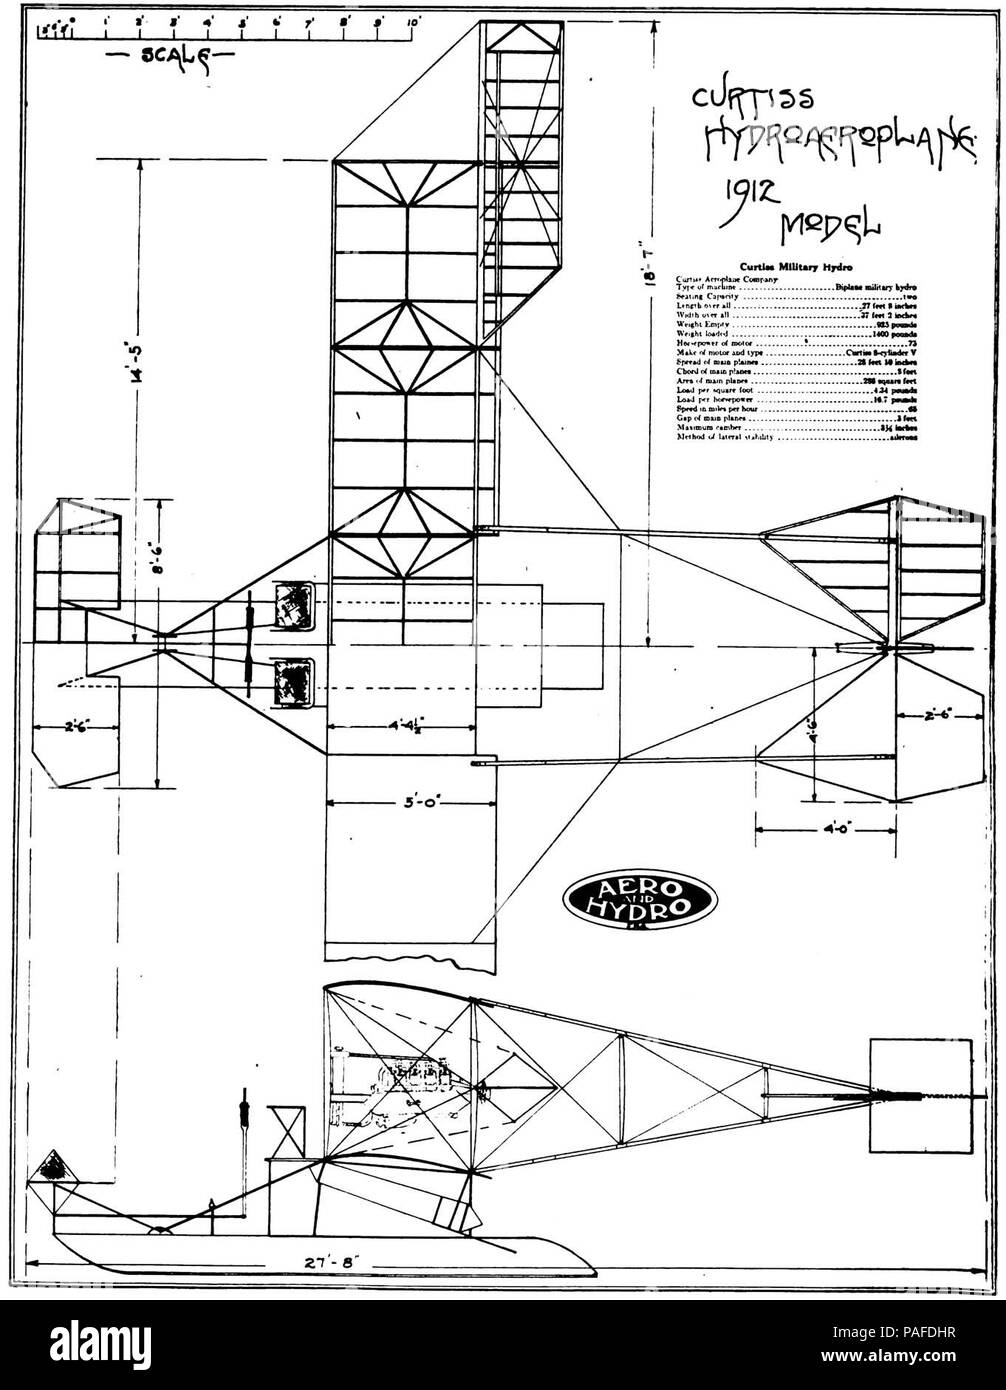 Curtiss 1912 Hydroplane 2 view from Aero and Hydro Vol. 1 p 336 - Stock Image